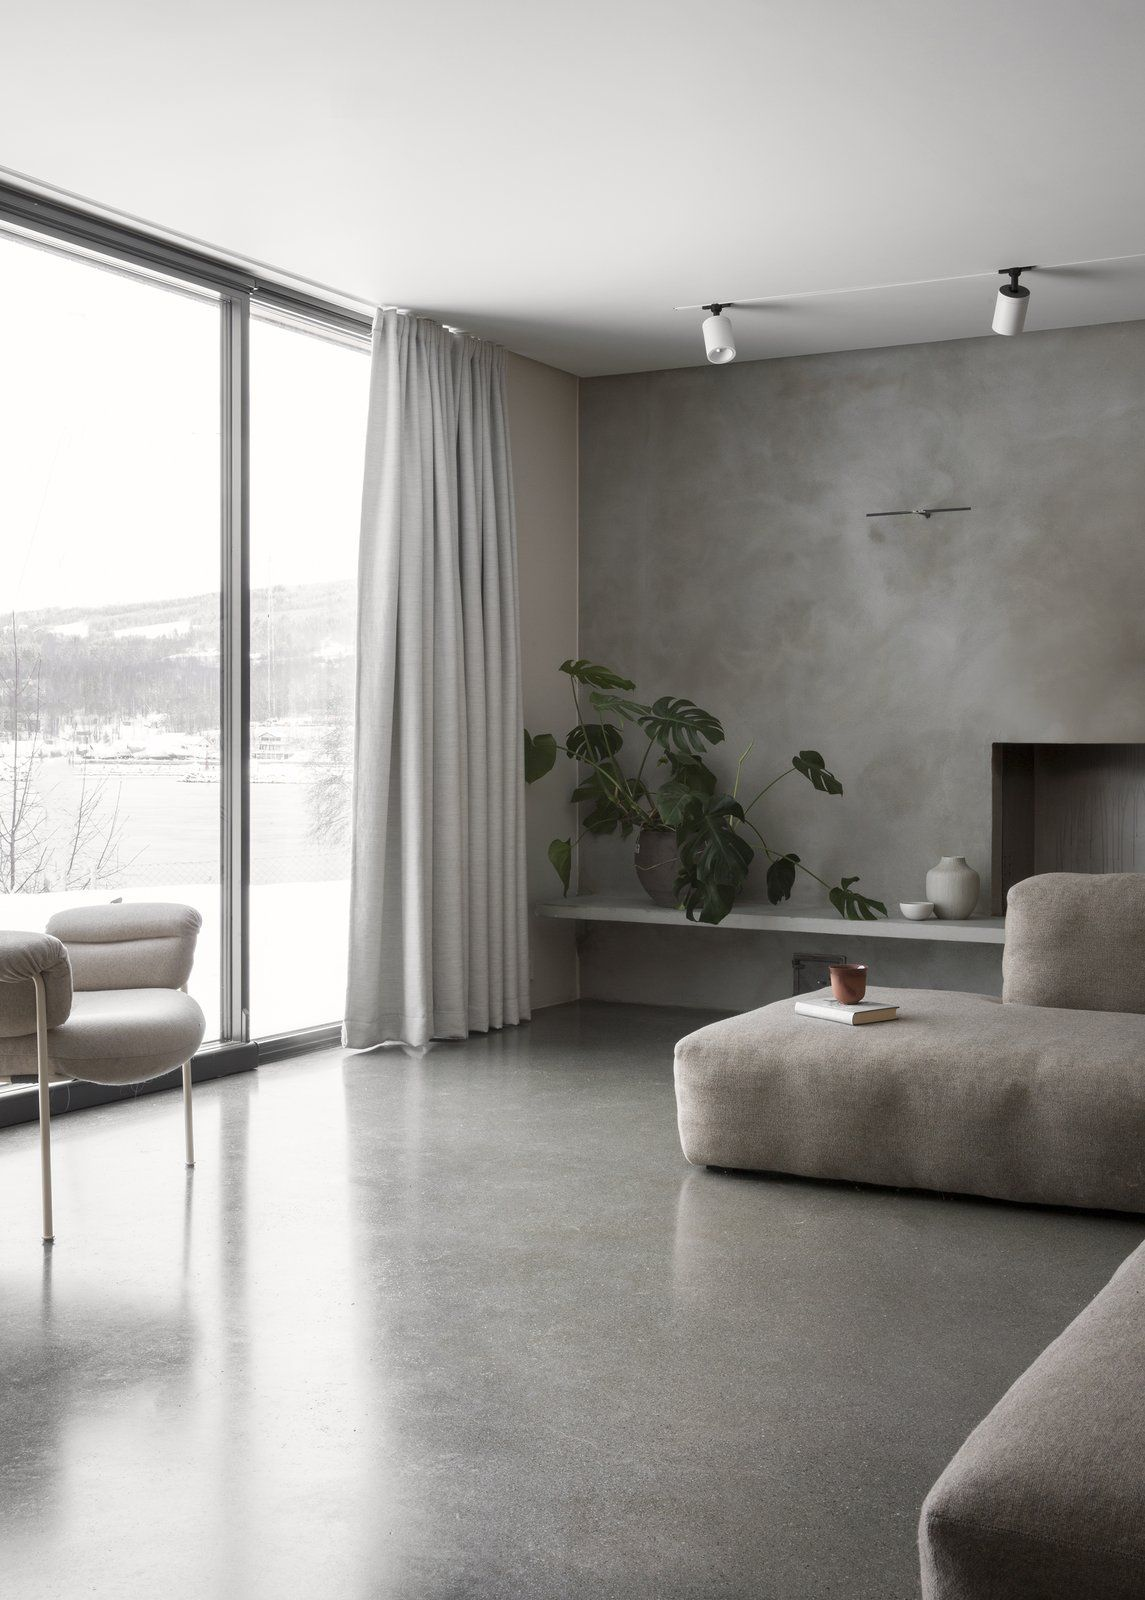 A Cubic Dwelling in Norway Just Oozes Hygge  Concrete interiors